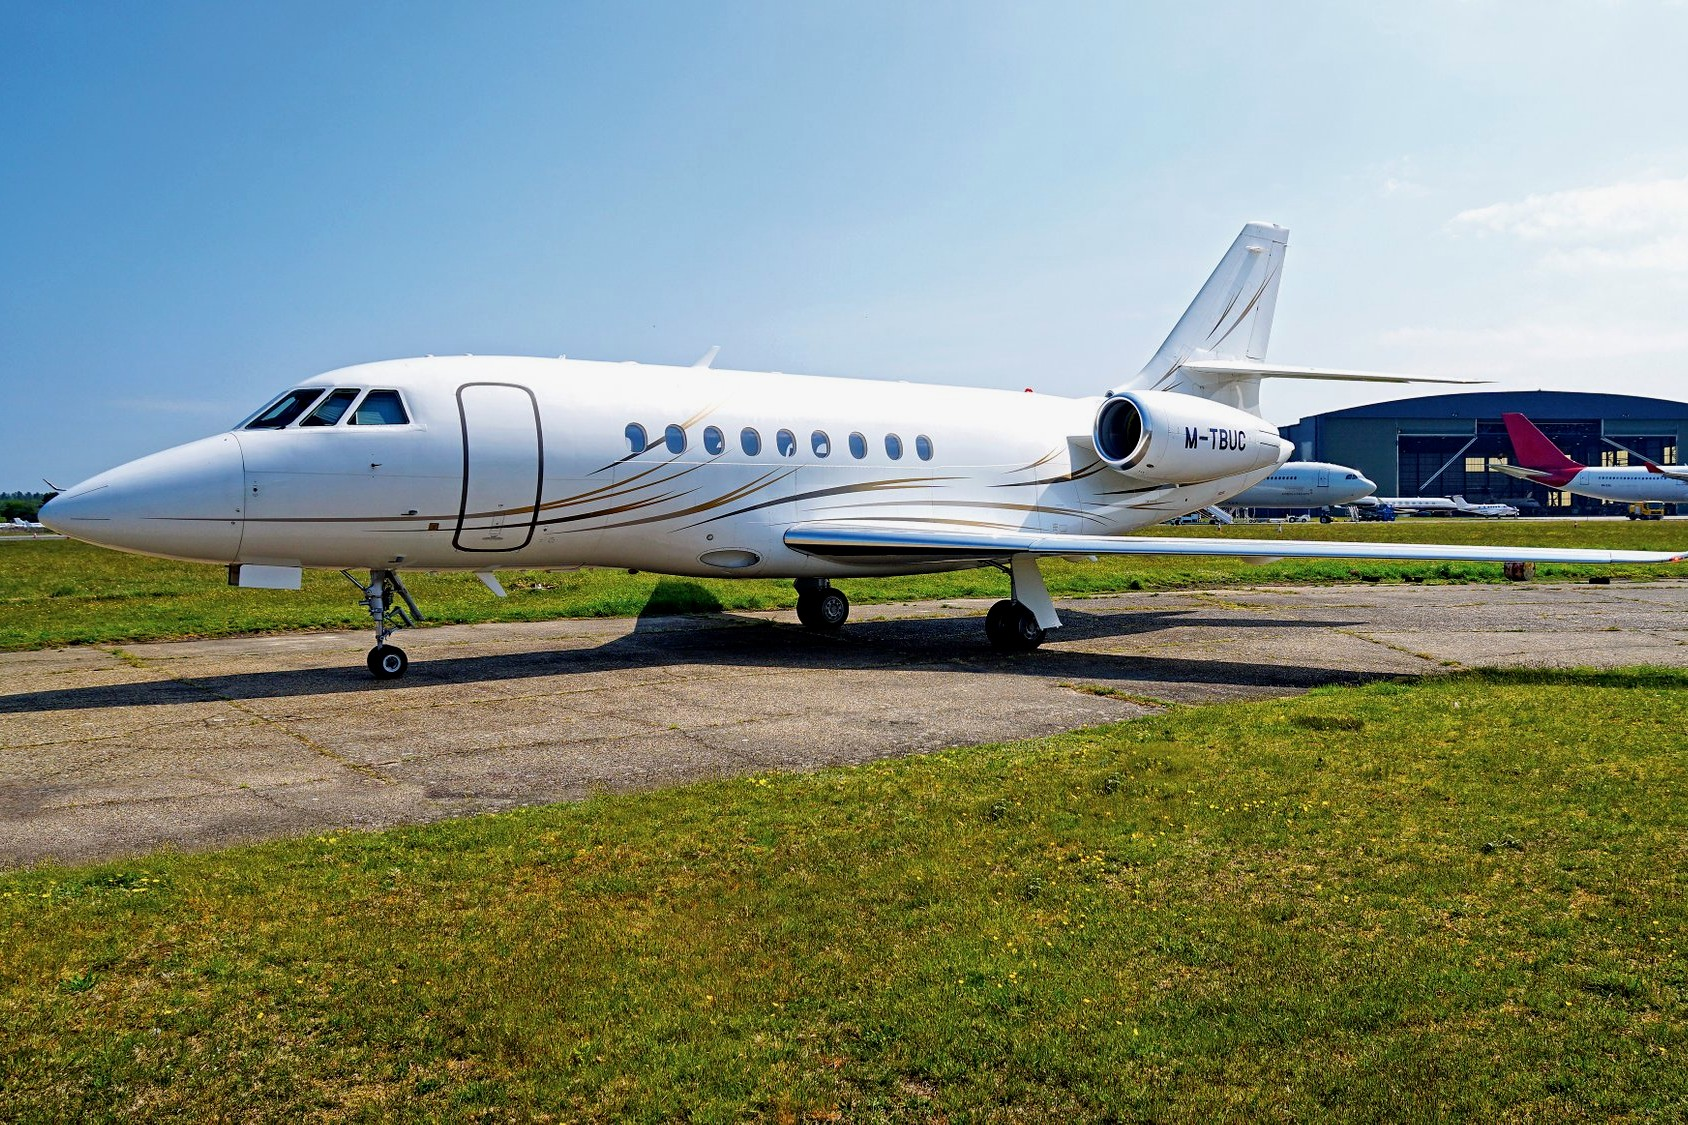 How much is a private jet to buy: prices worldwide. 2009 Dassault Falcon 2000LX, Monaco, price on request.